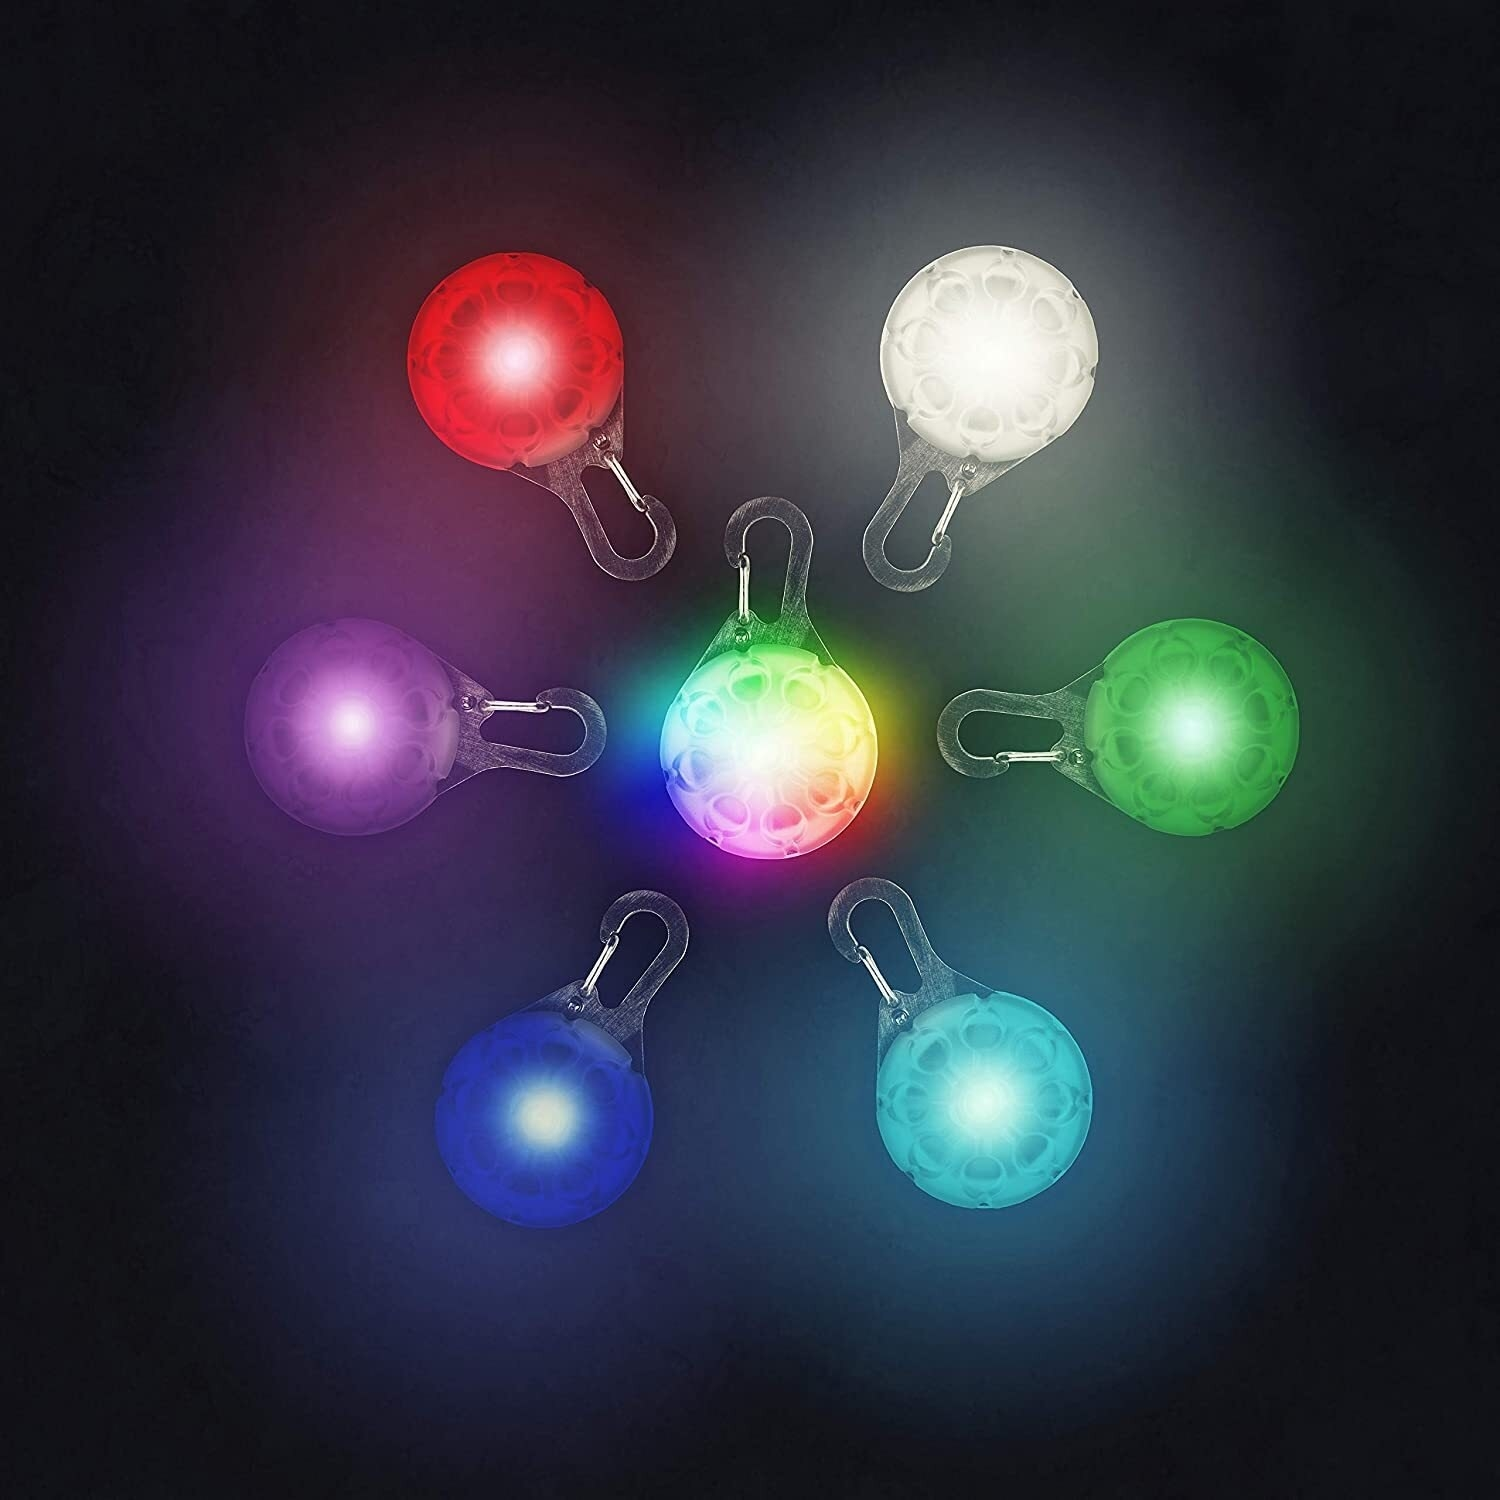 Six collar lights arranged in a circle